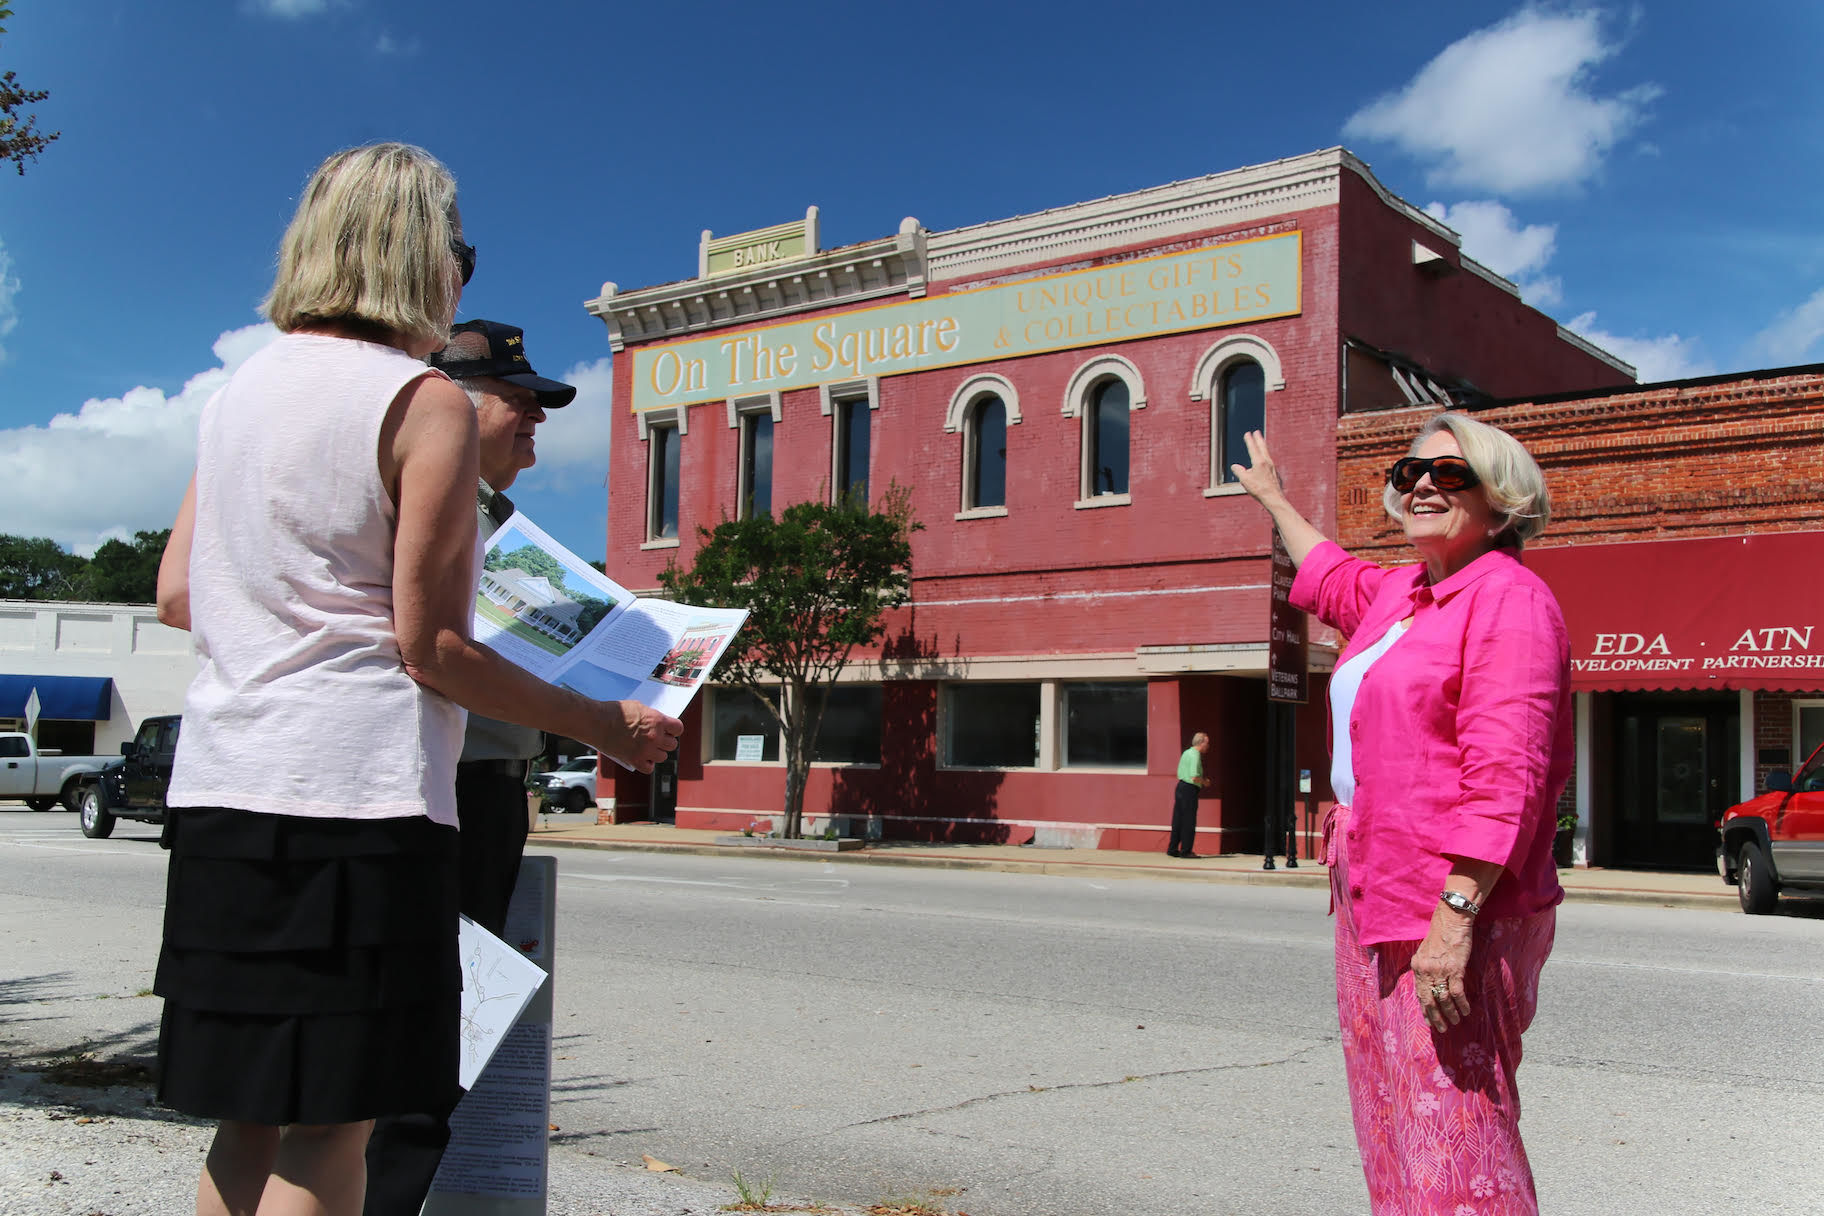 Harper Lee's Small Alabama Hometown Set To Become Major Tourist Destination